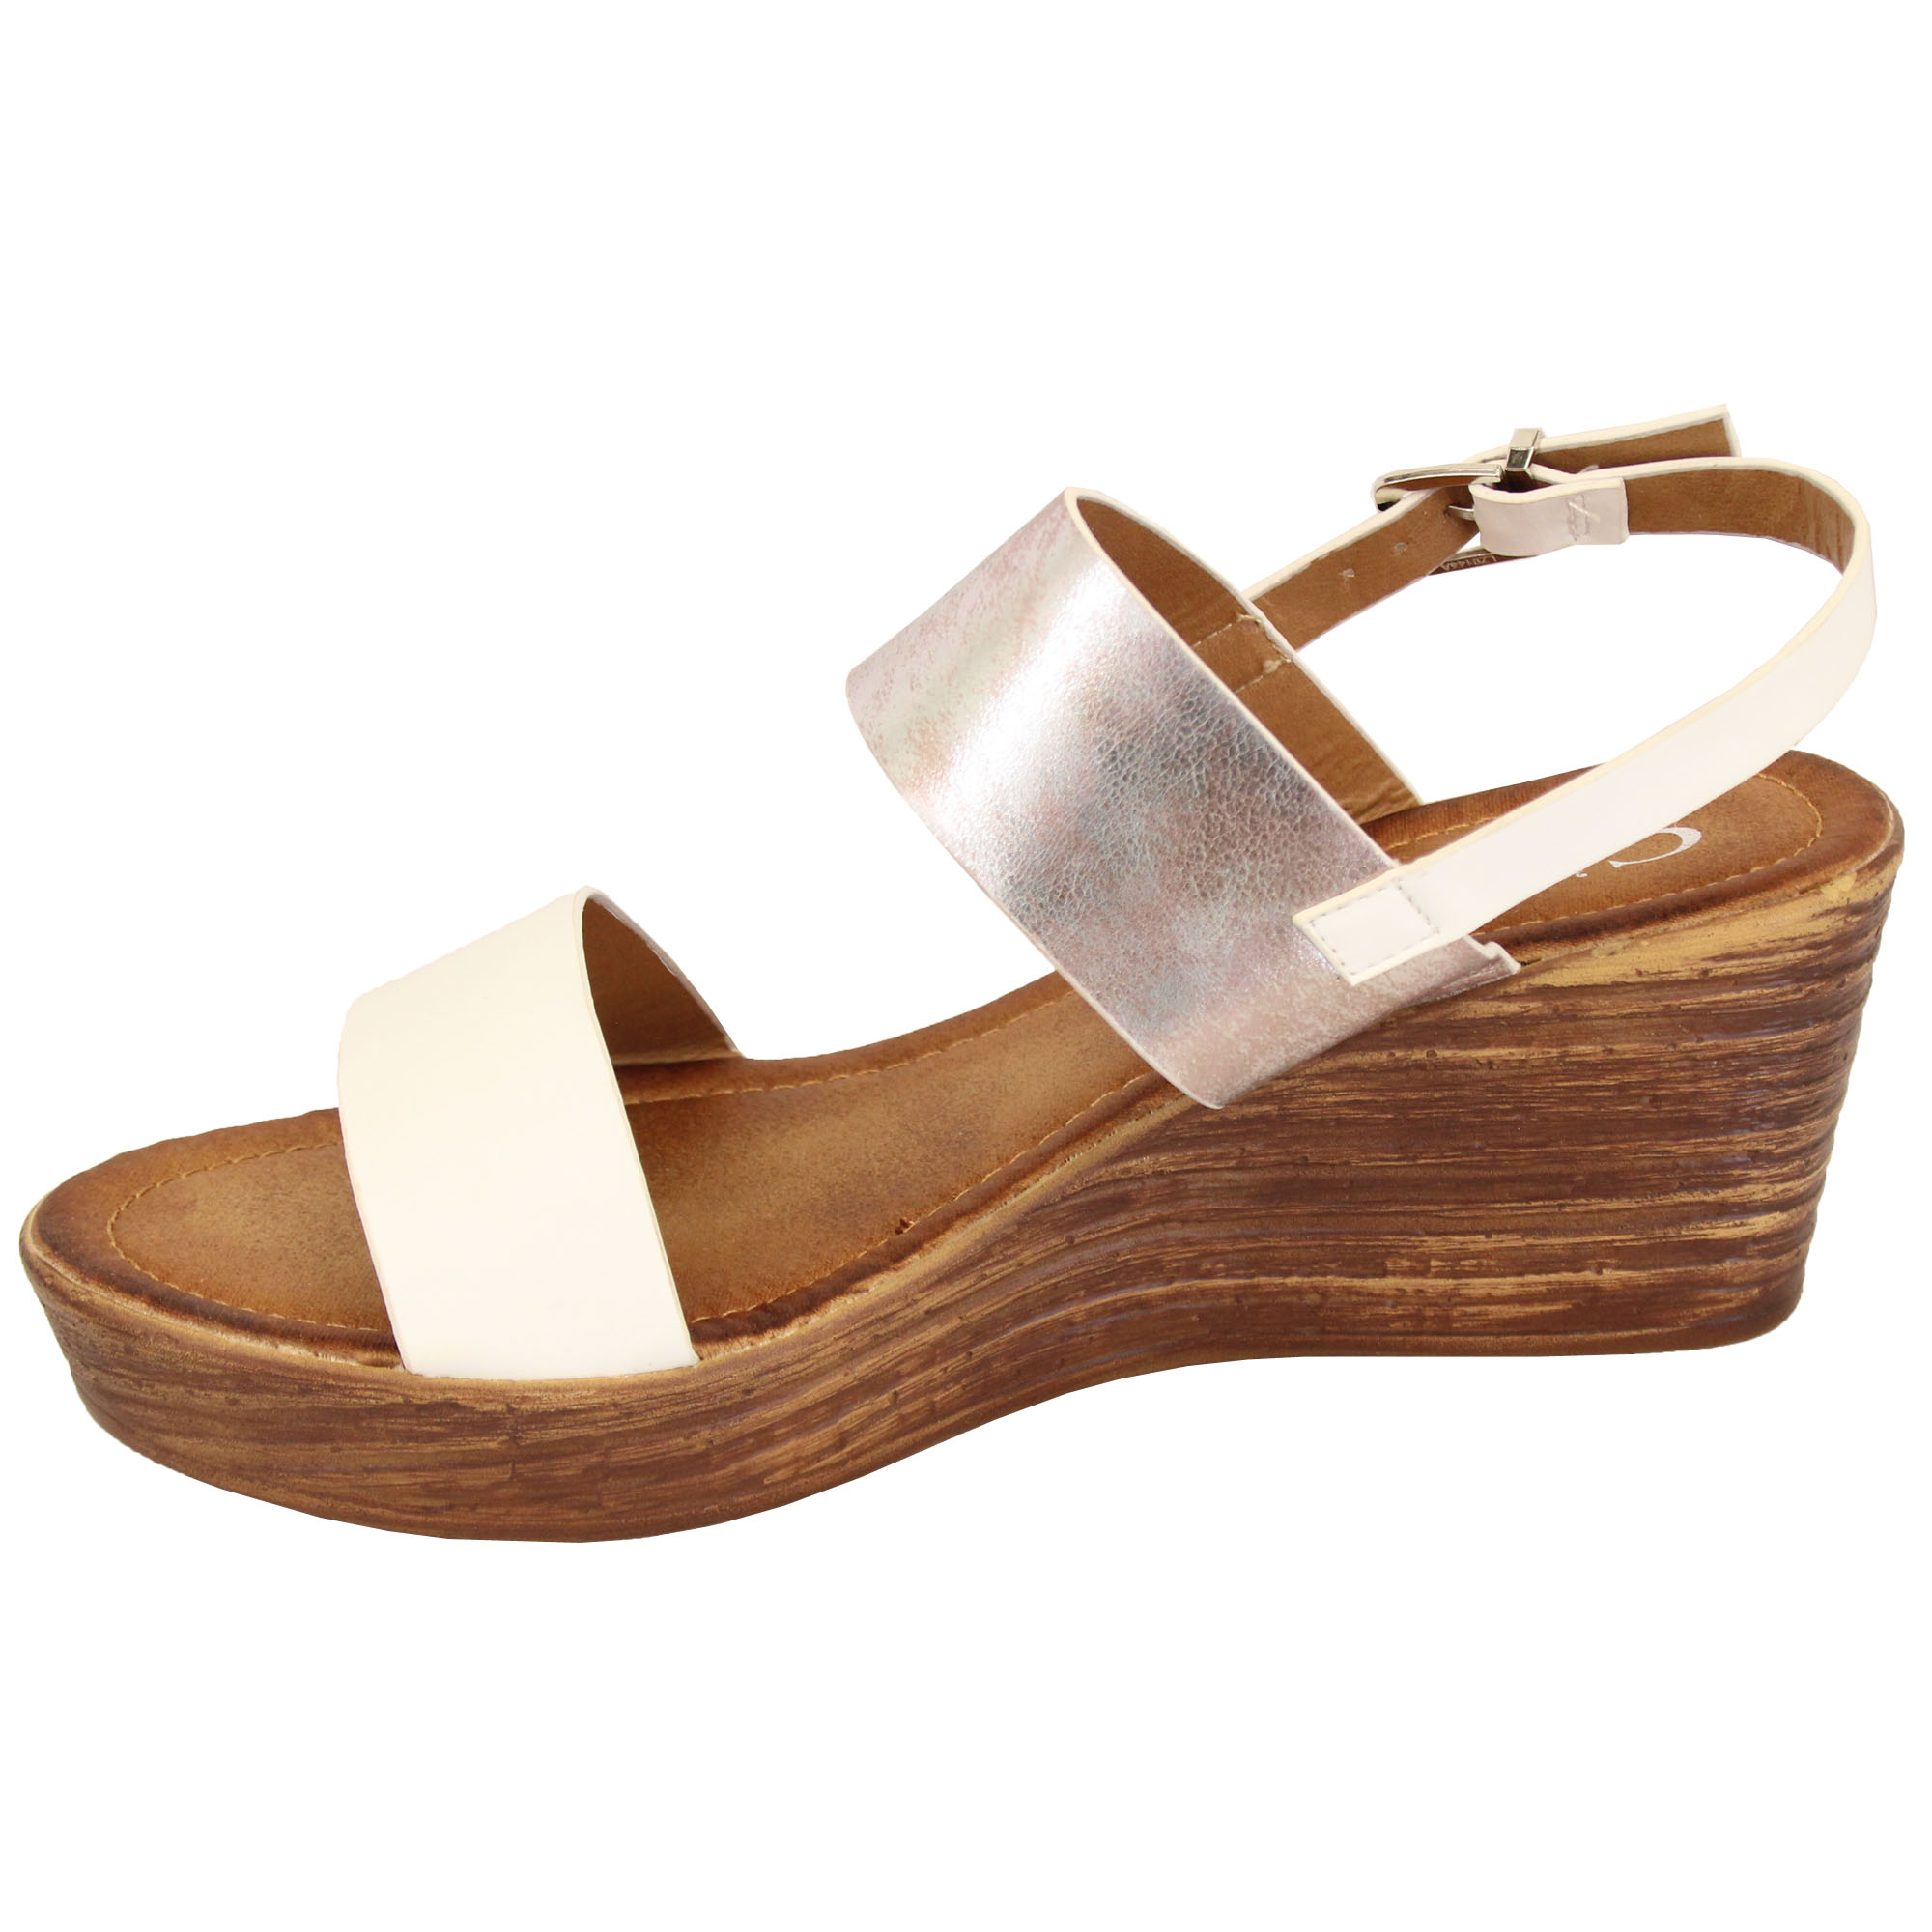 Ladies-Wedge-Sandals-Womens-Strappy-Open-Toe-Shoes-Party-Fashion-Buckle-Summer thumbnail 7